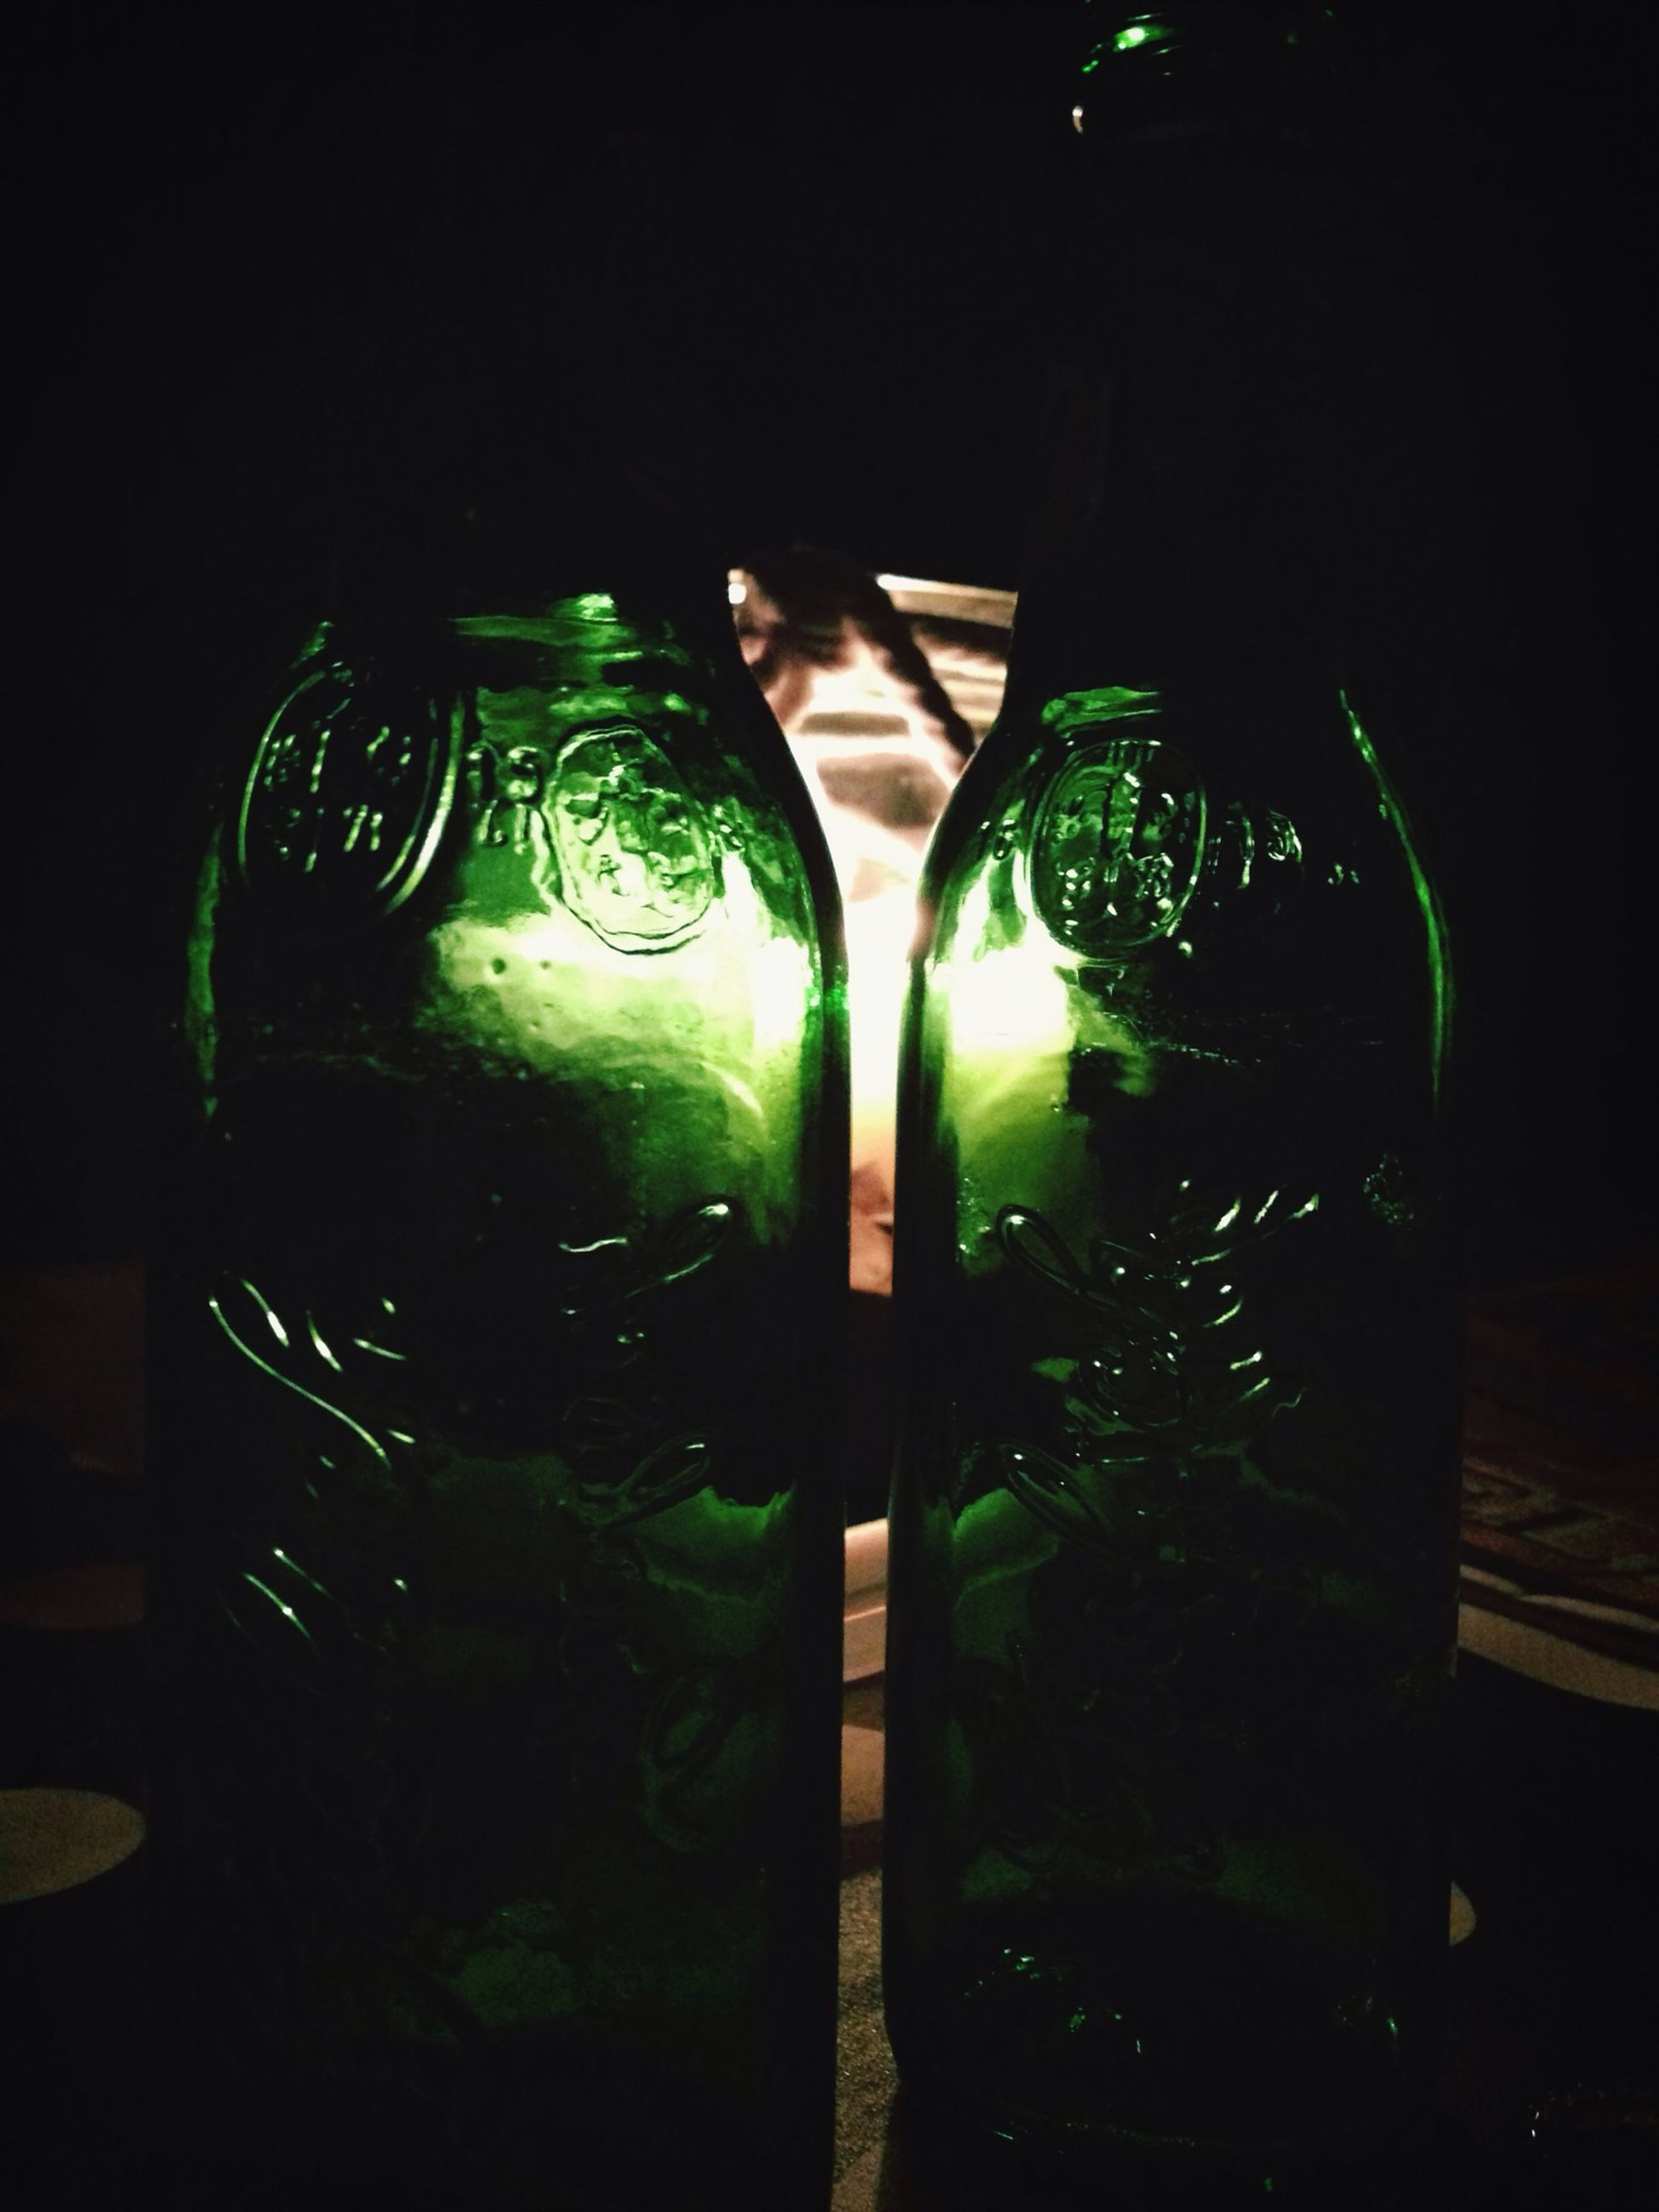 indoors, glass - material, still life, table, green color, close-up, transparent, no people, illuminated, home interior, bottle, glass, wall - building feature, potted plant, drinking glass, shadow, decoration, plant, vase, growth